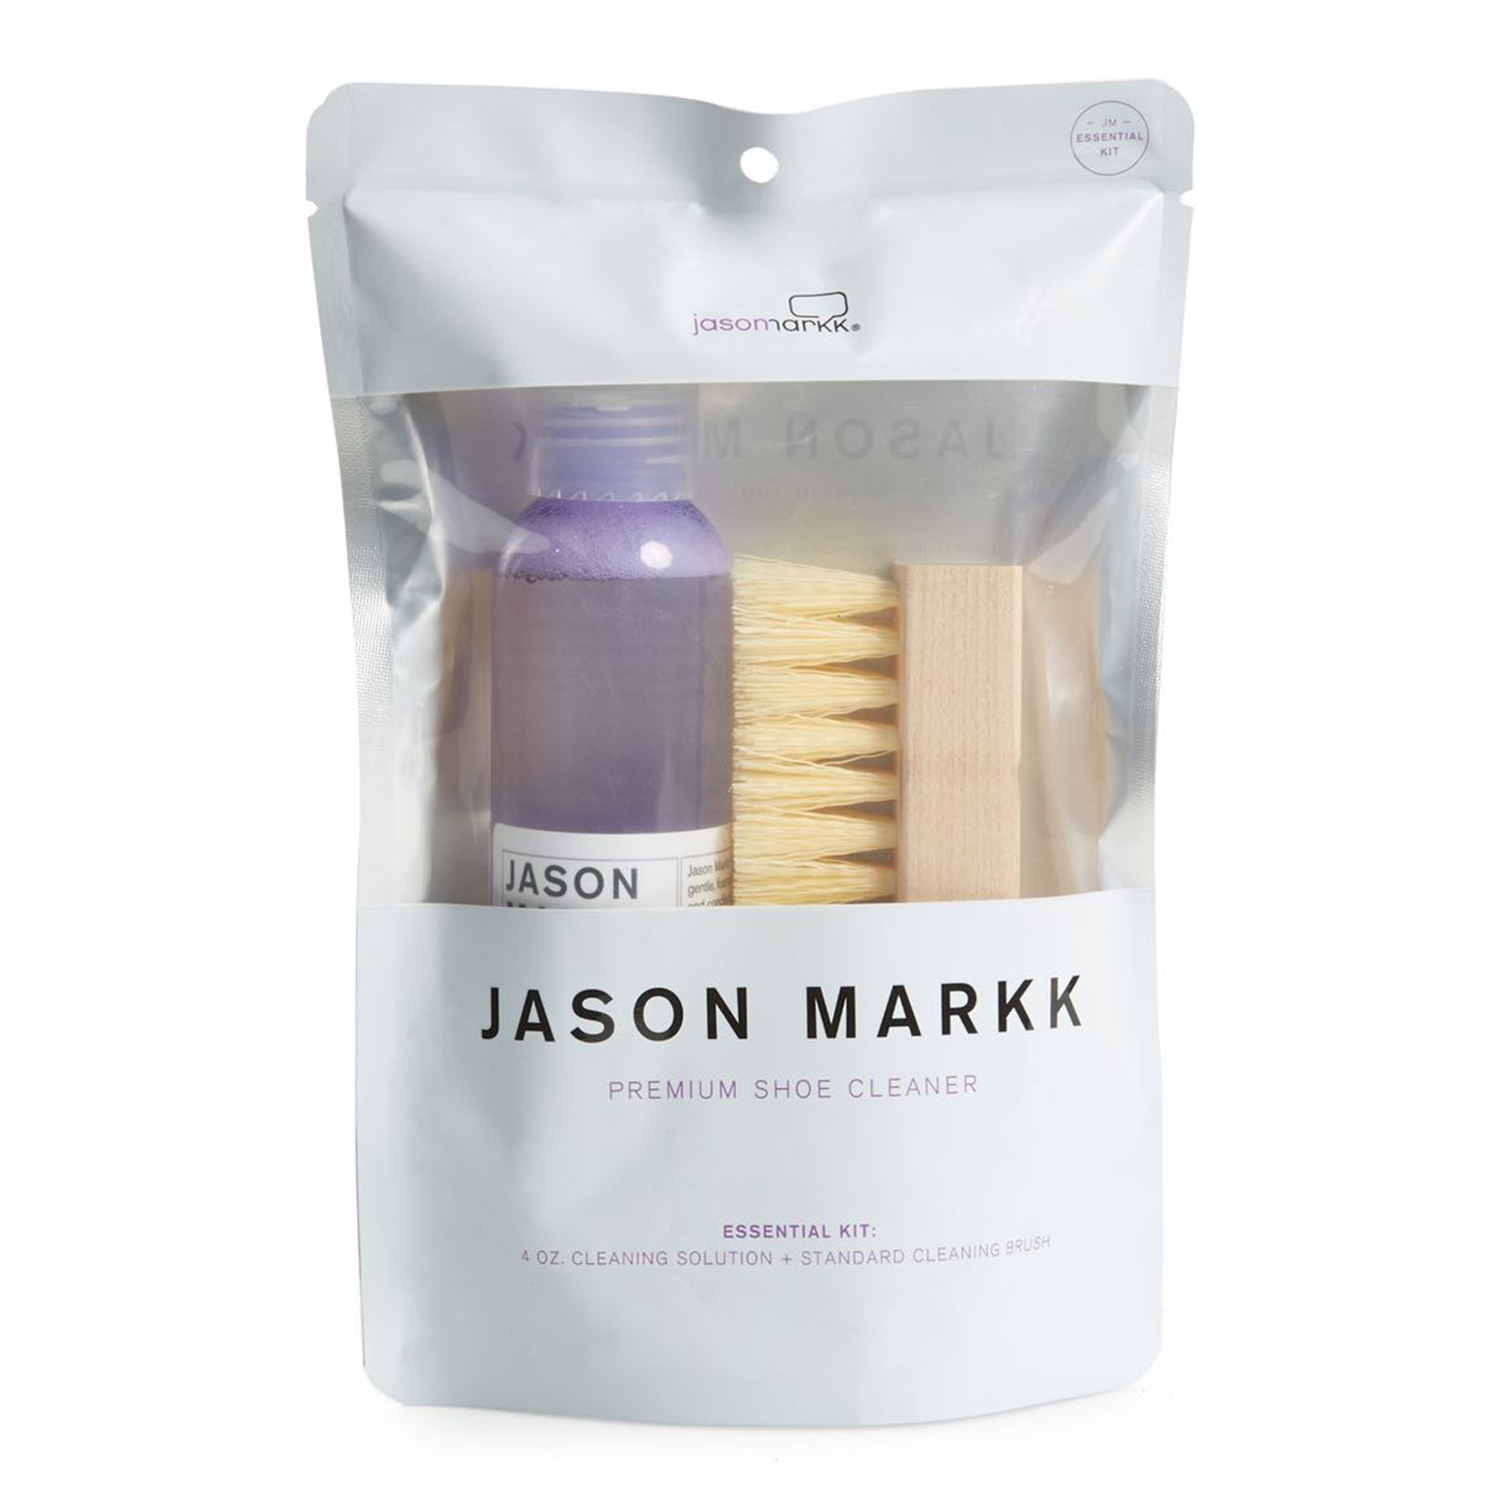 Jason Markk Essential Shoe Cleaning Kit